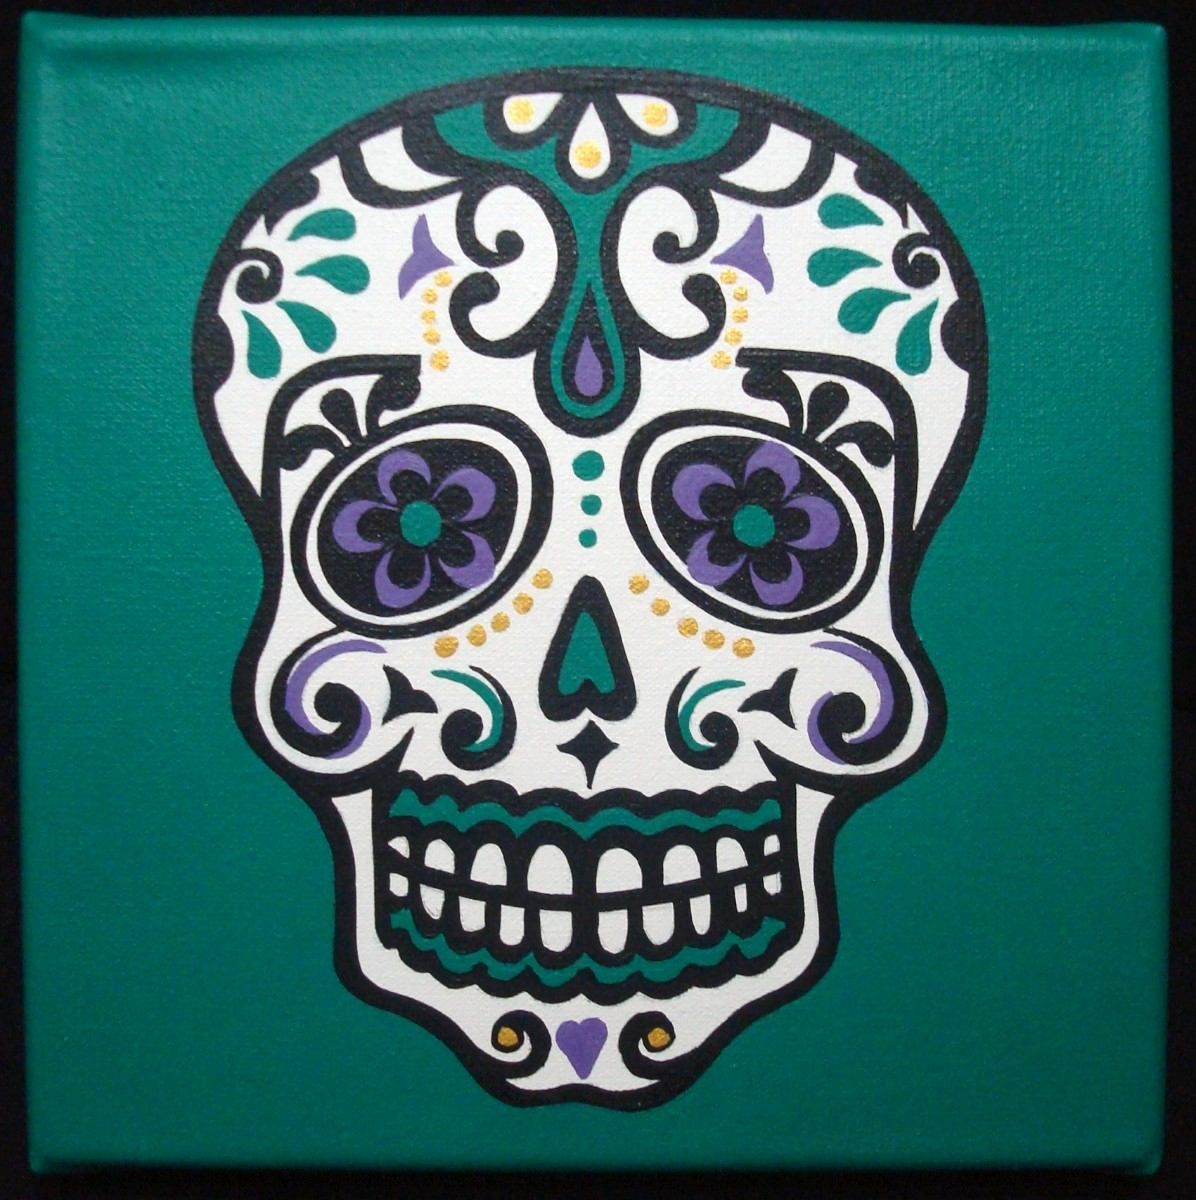 Calavera Mexicana Wallpaper | www.pixshark.com - Images ...